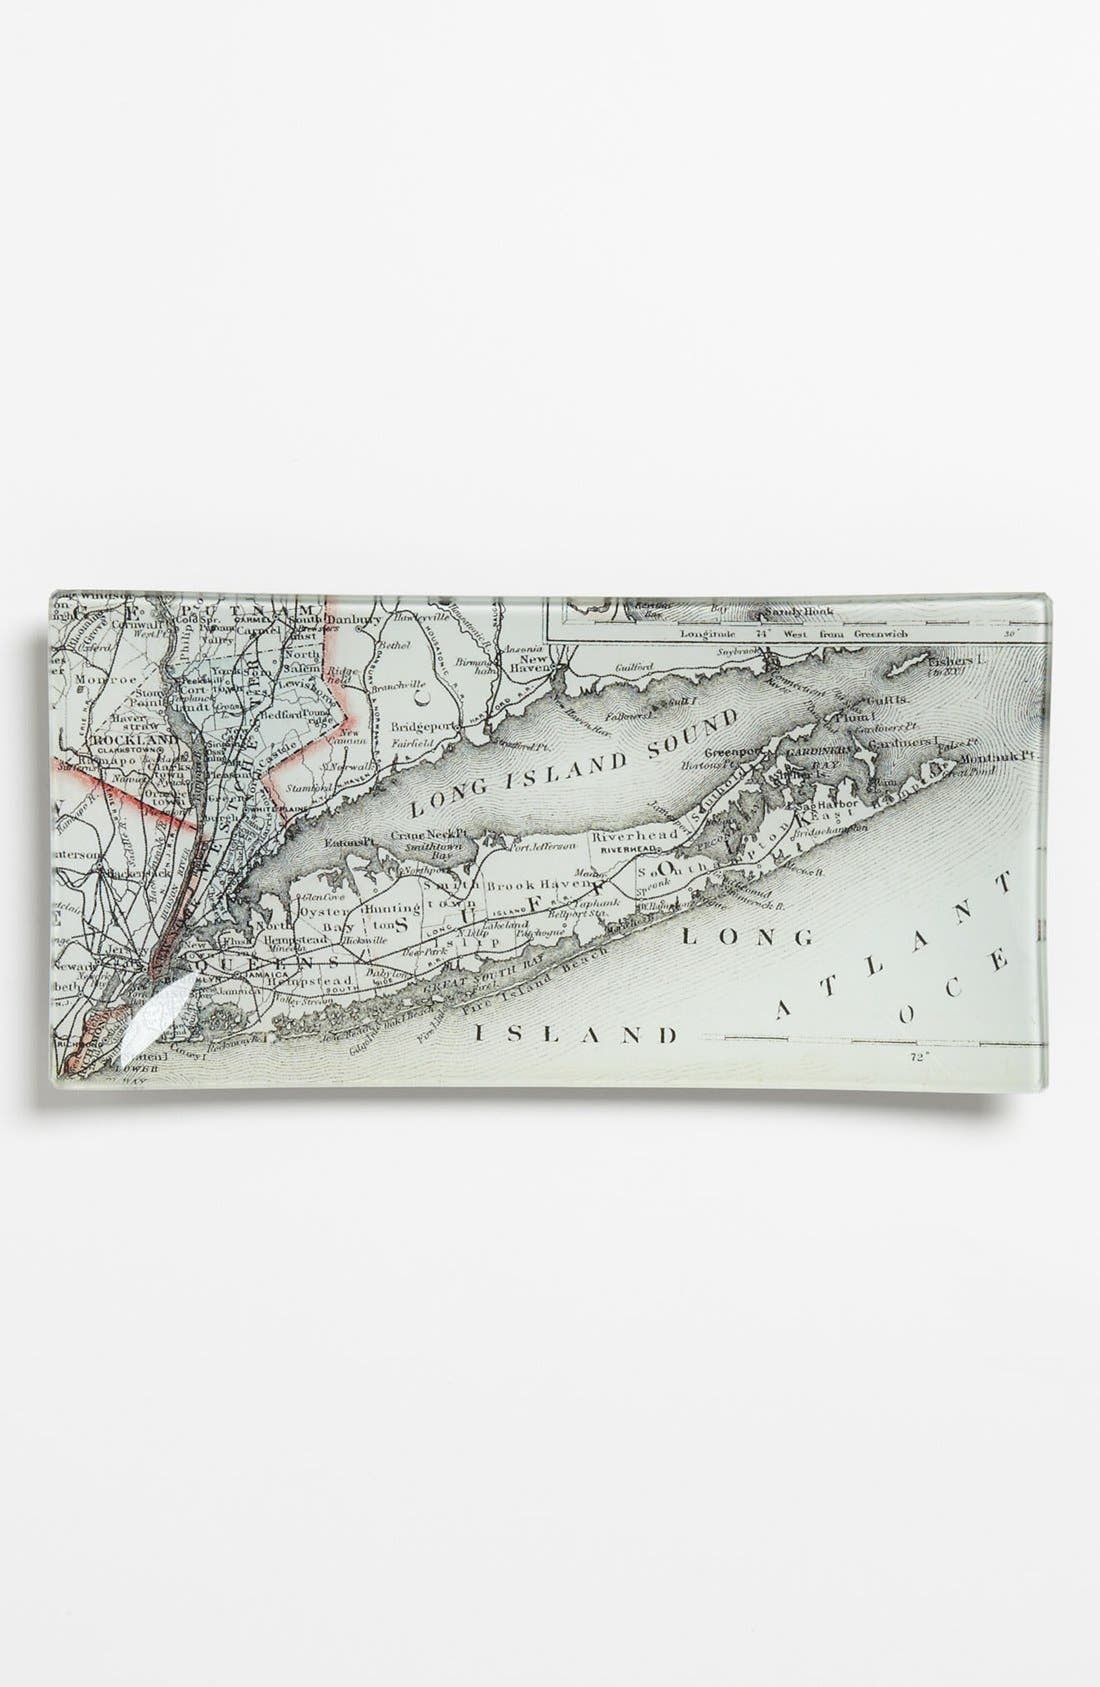 Alternate Image 1 Selected - Ben's Garden 'Long Island Antique Map' Trinket Tray